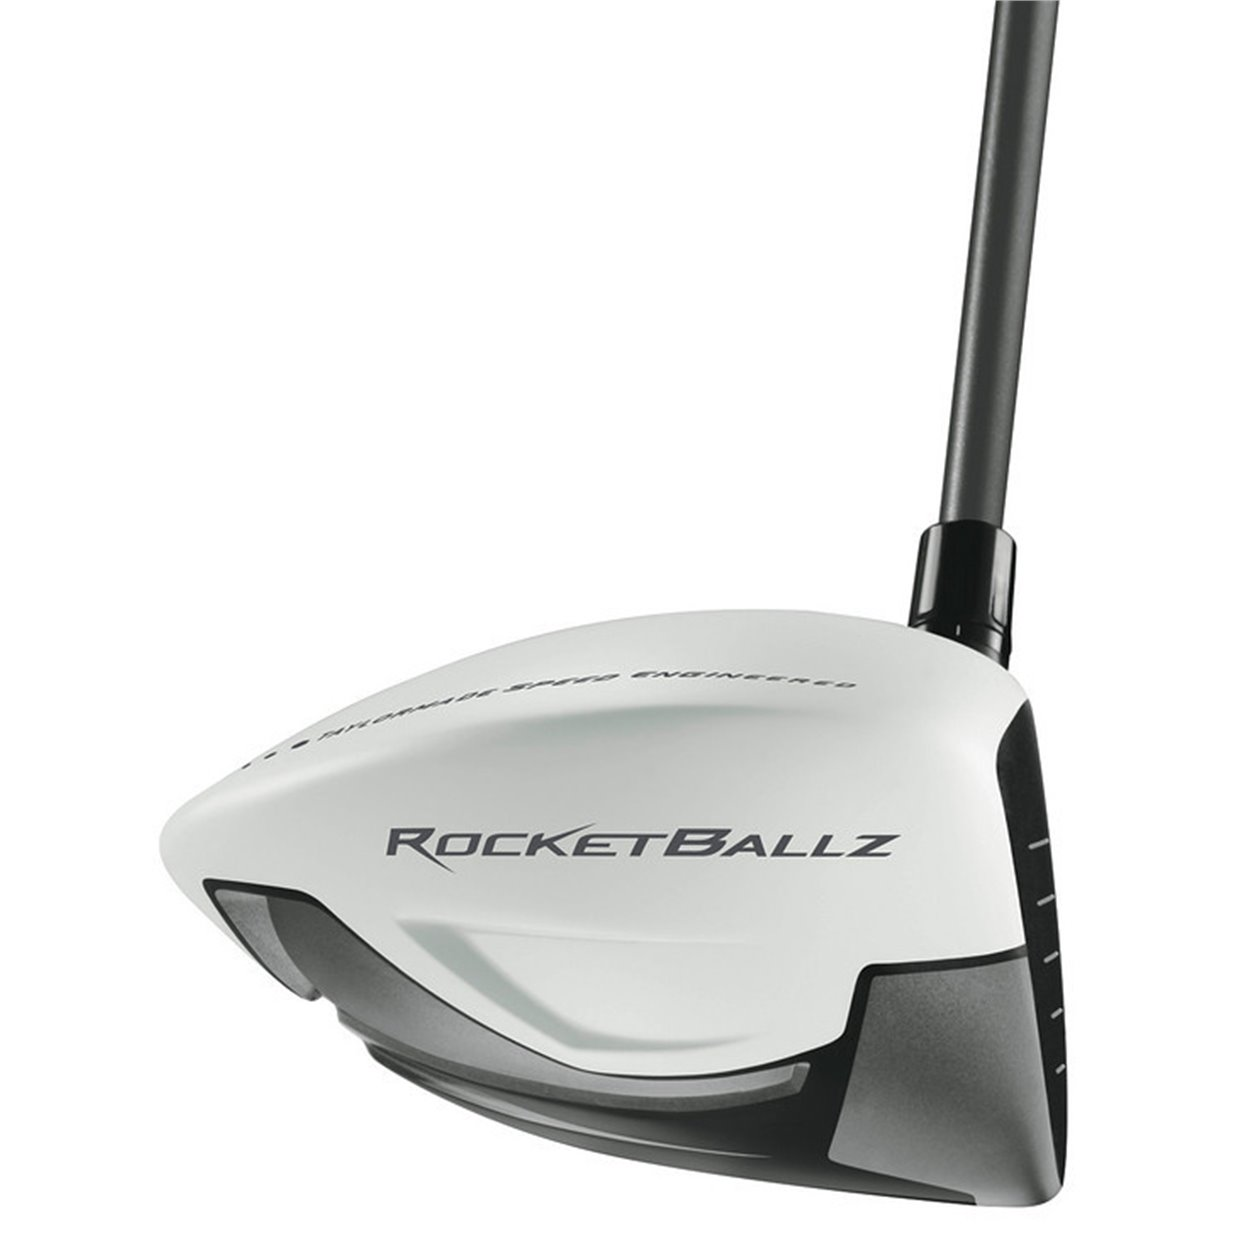 Taylormade Rocketballz Driver >> Taylormade Rocketballz Tour Driver 9 Used Golf Club